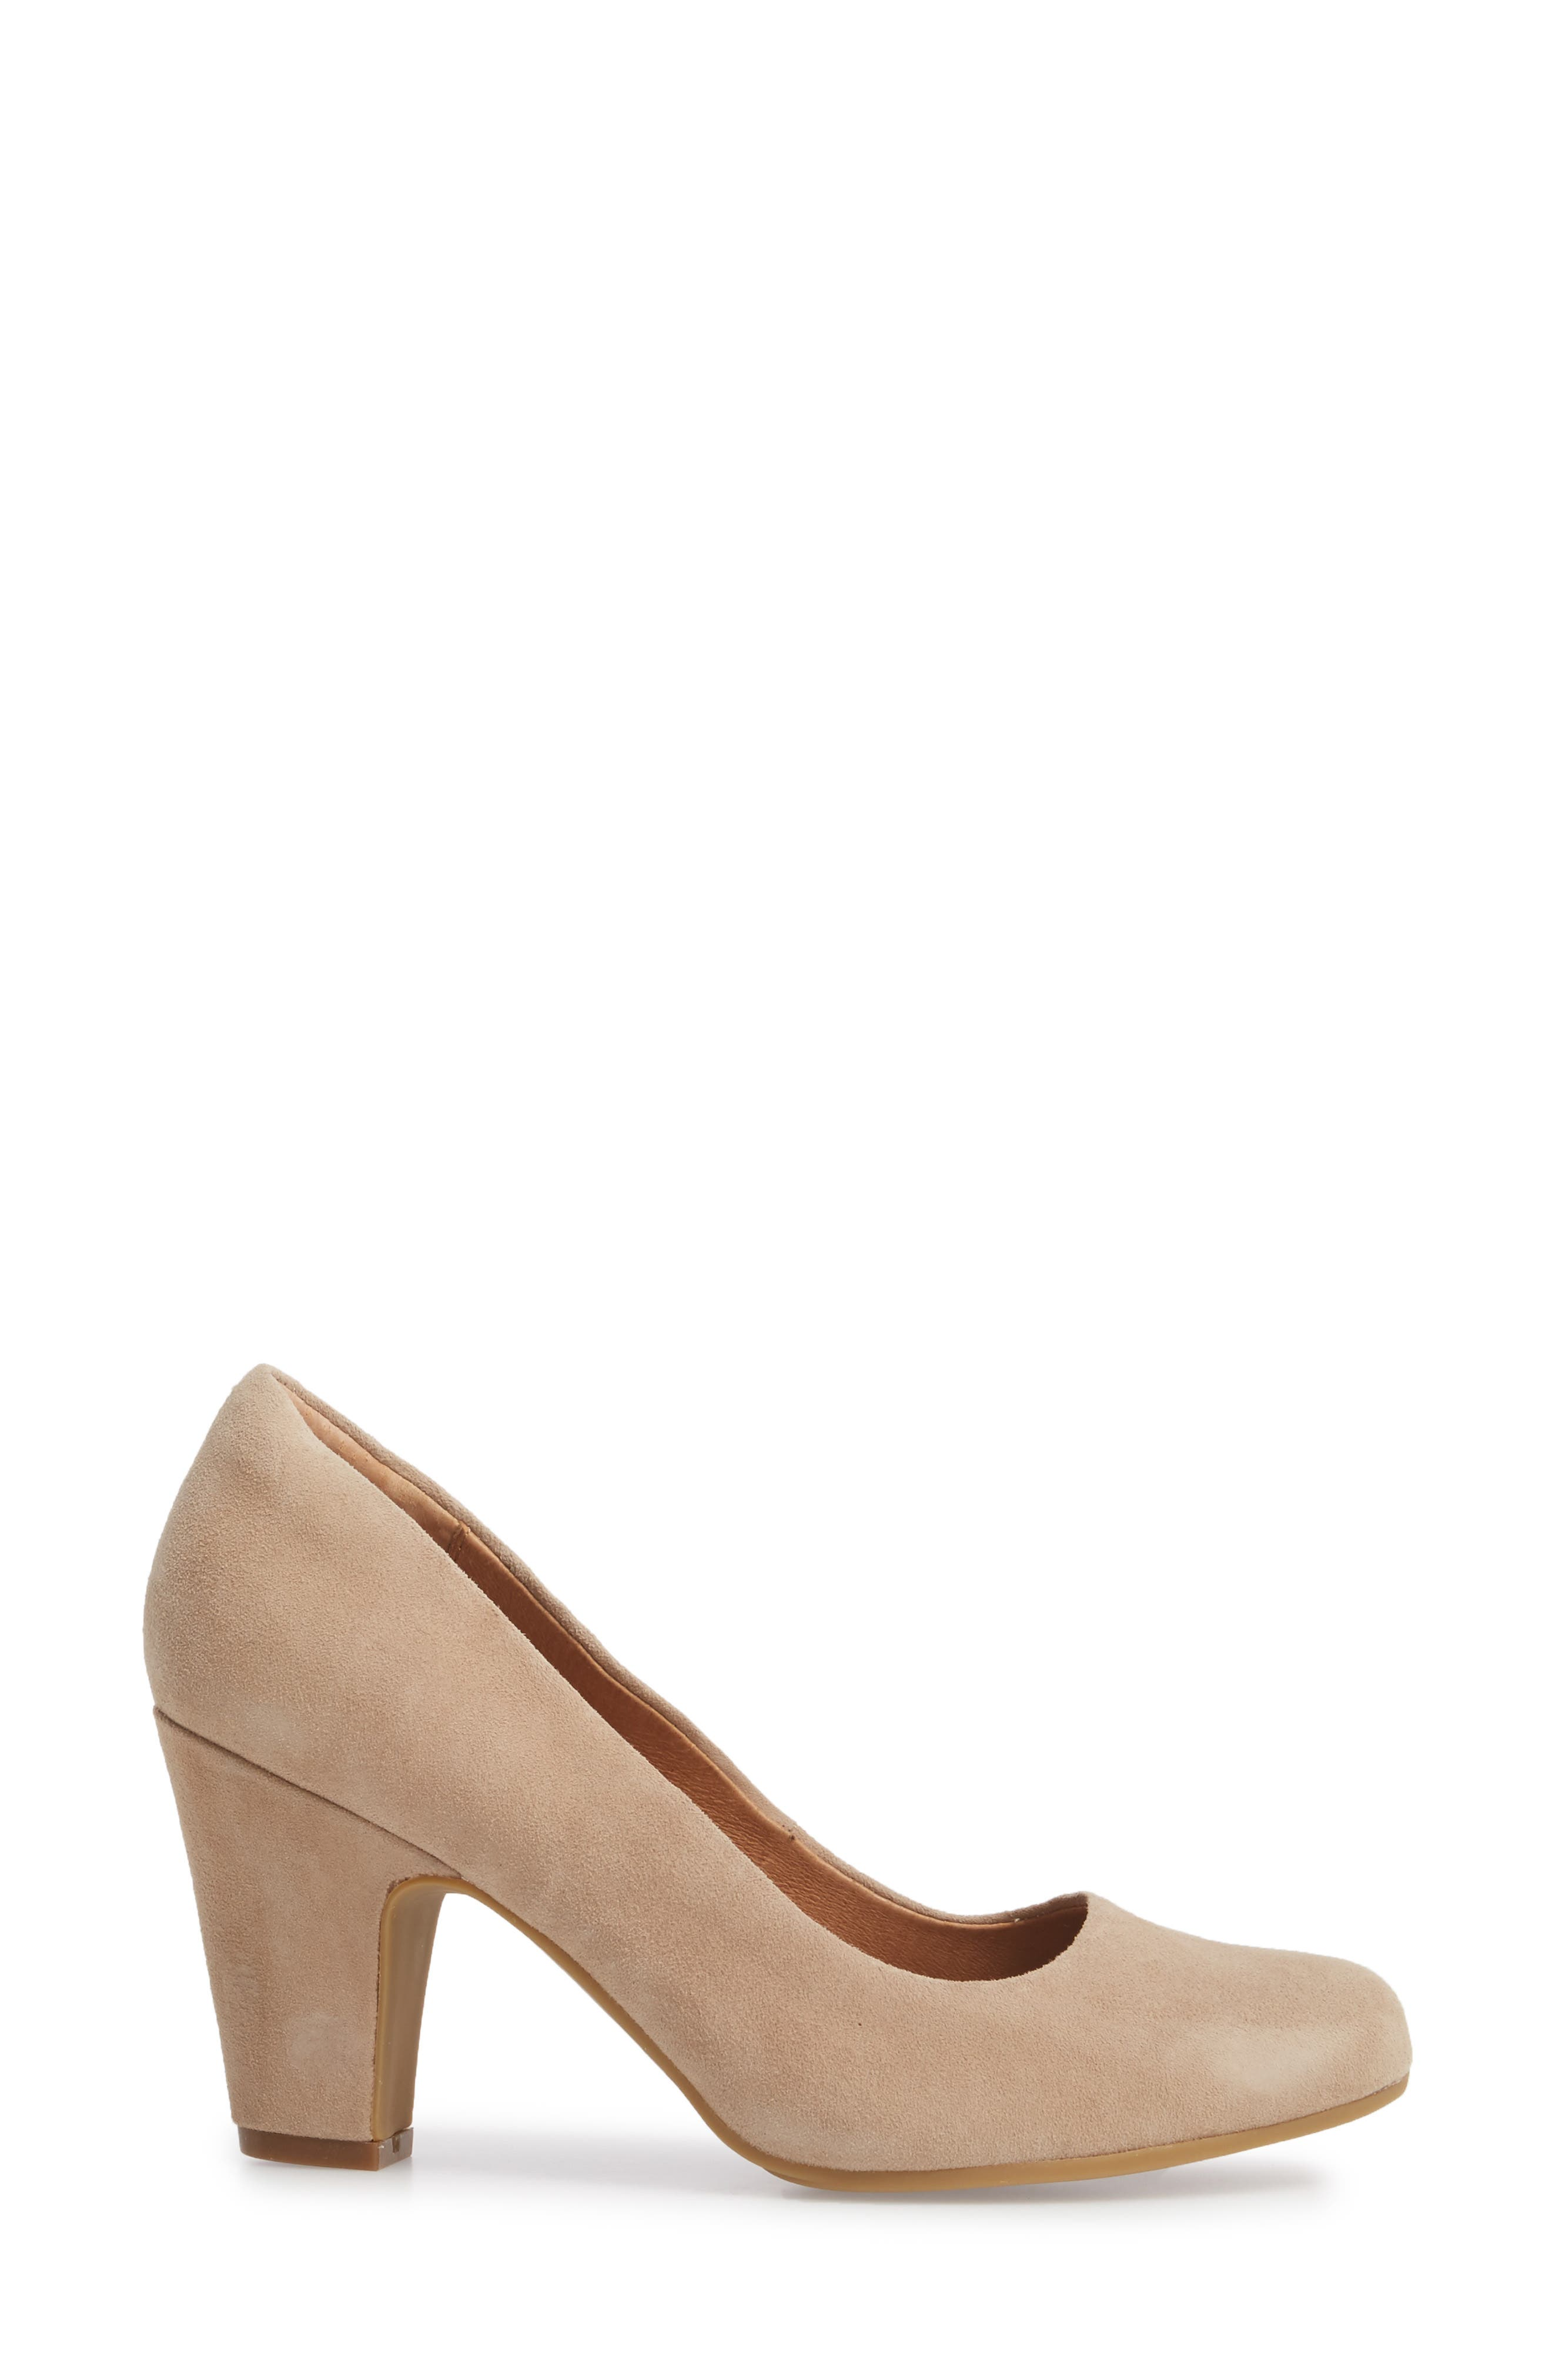 Madina Pump,                             Alternate thumbnail 3, color,                             BAYWATER SUEDE